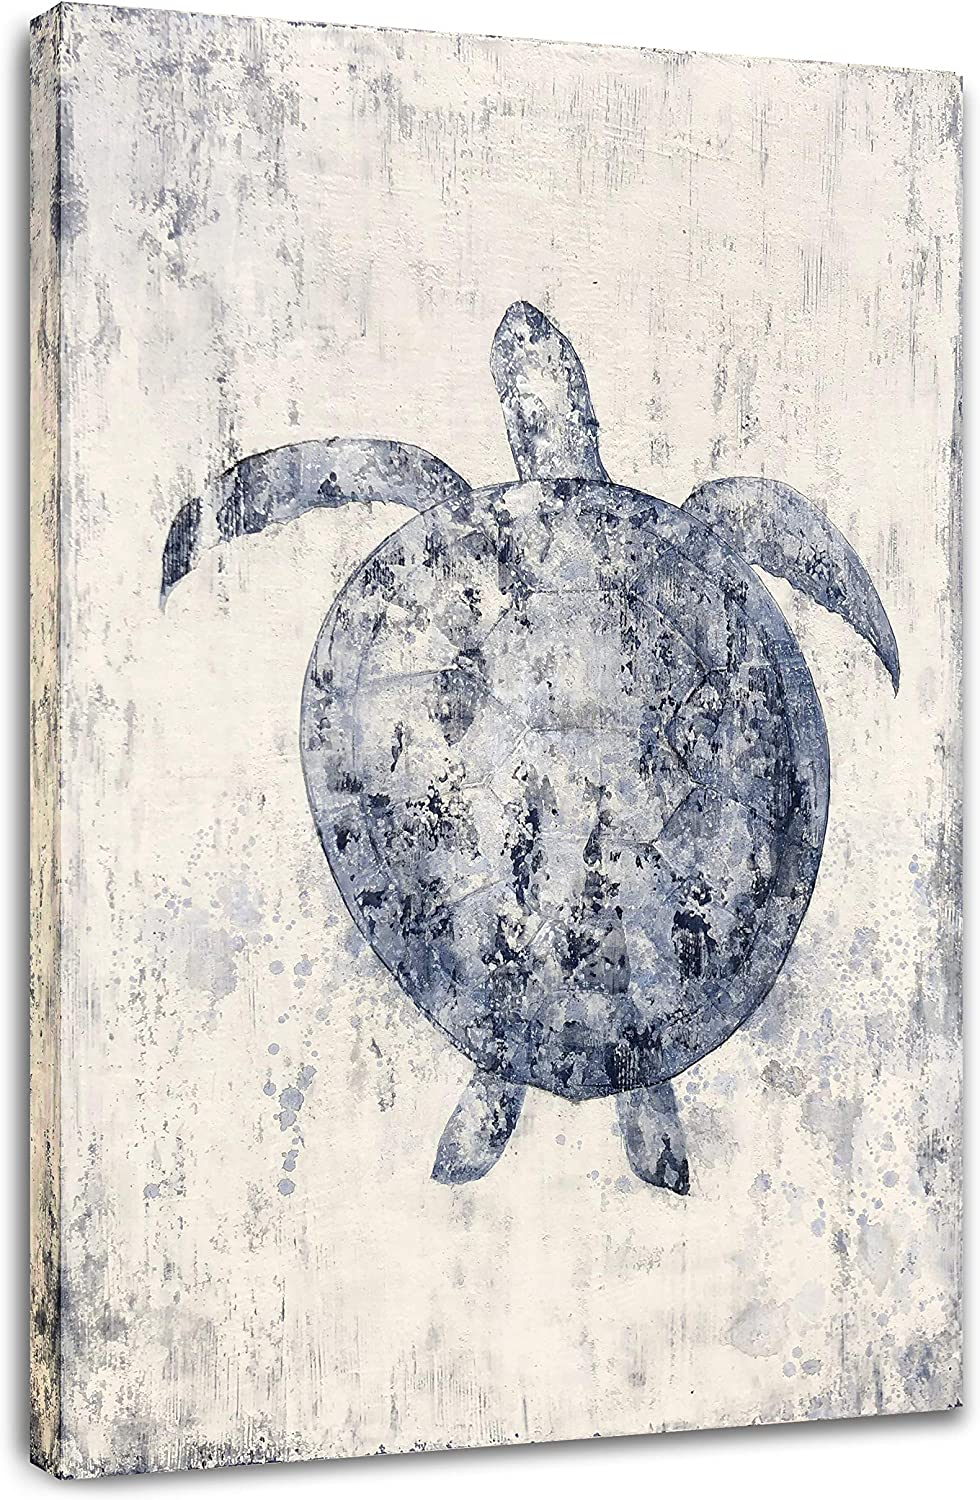 Yihui Arts Large Blue Sea Turtle Gifts Modern Abstract Canvas Art Ocean Animal Posters Pictures Nautical Wall Decor For Bathroom Decoration